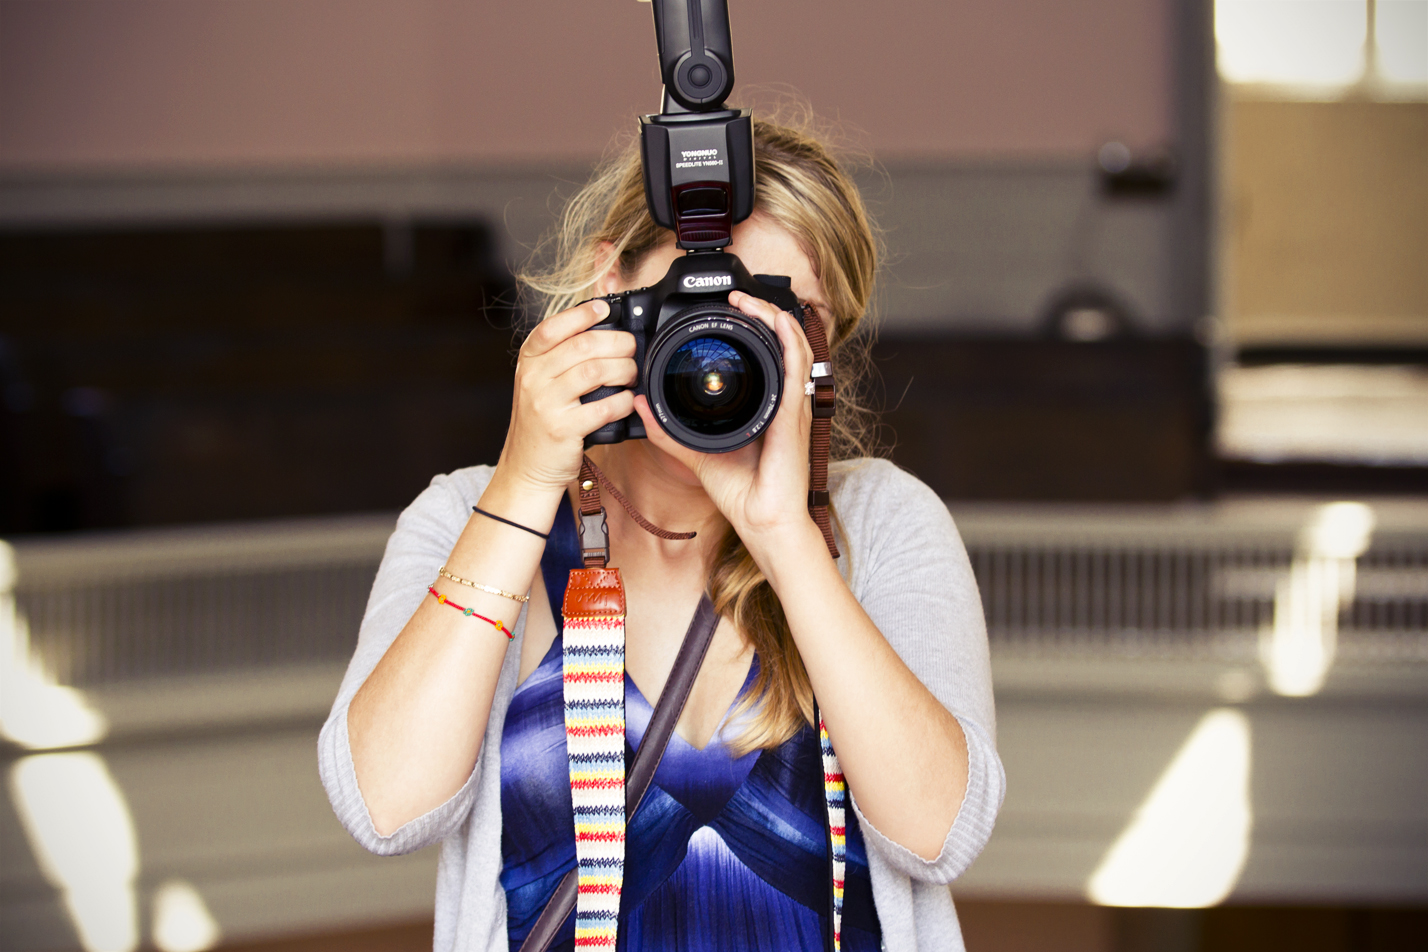 10 Questions to Ask Before Hiring a Wedding Photographer - Image Property of www.j-dphoto.com